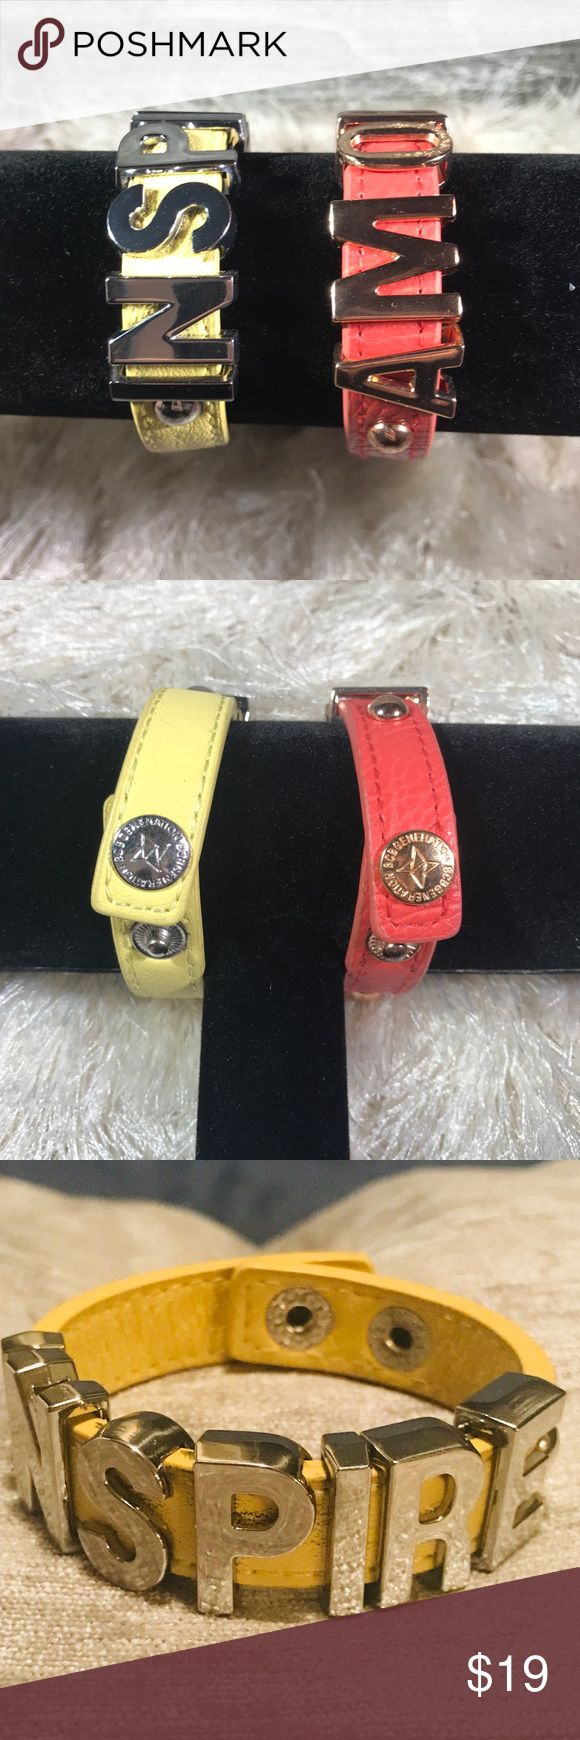 2 new inspirational BCBG hardware bracelets 🌈 Fun & inspirational bundle of BCBGenration adjustable snap bracelets. Vinyl with gold toned hardware. Out of stock from major retailers. Positive and fun! Pair with the FEARLESS necklace and save! BCBGeneration Jewelry Bracelets